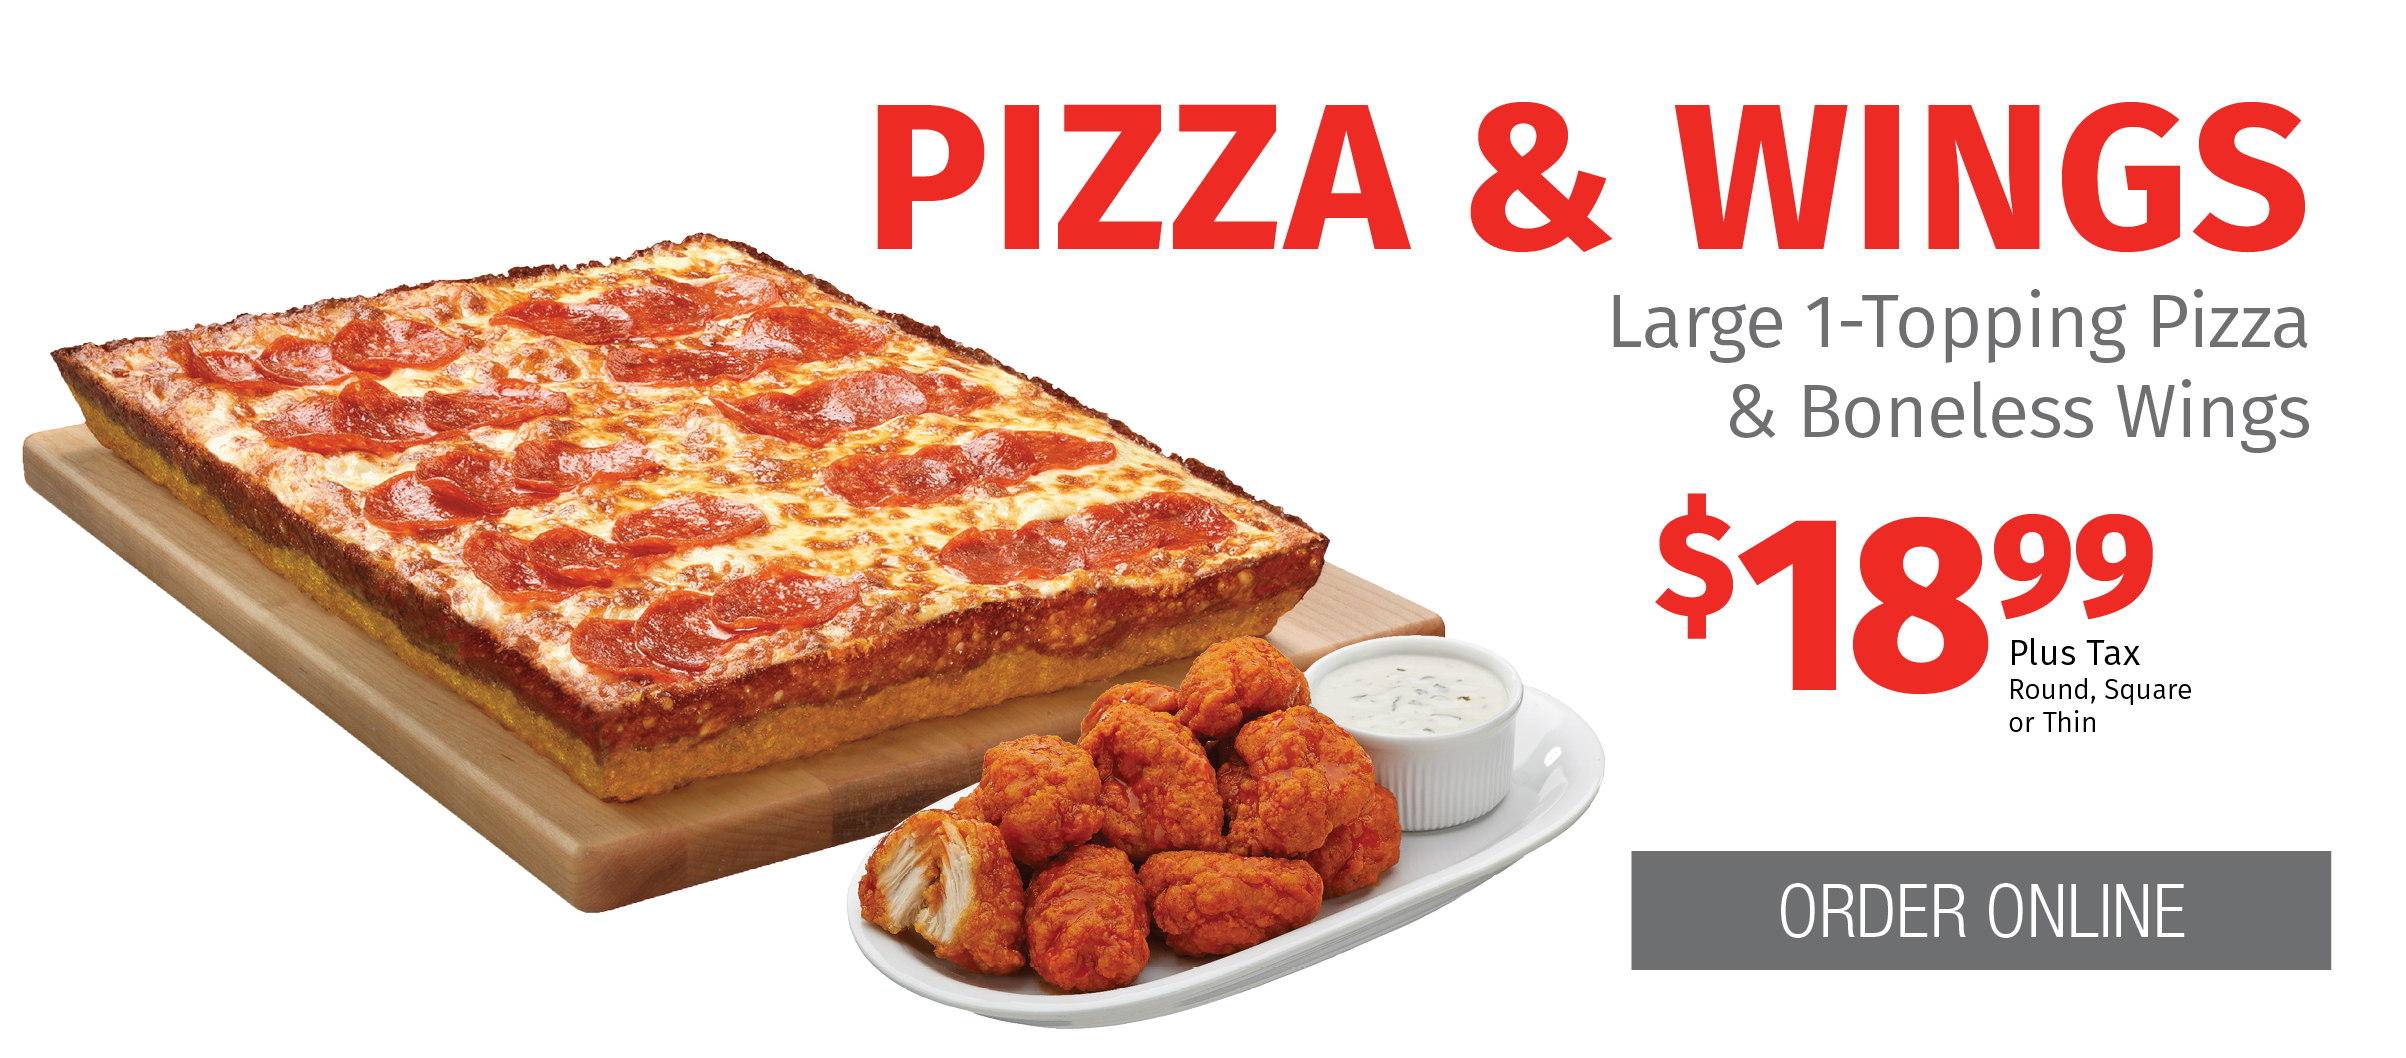 Order Pizza Online For Delivery Or Pickup - Papa's Pizza To Go